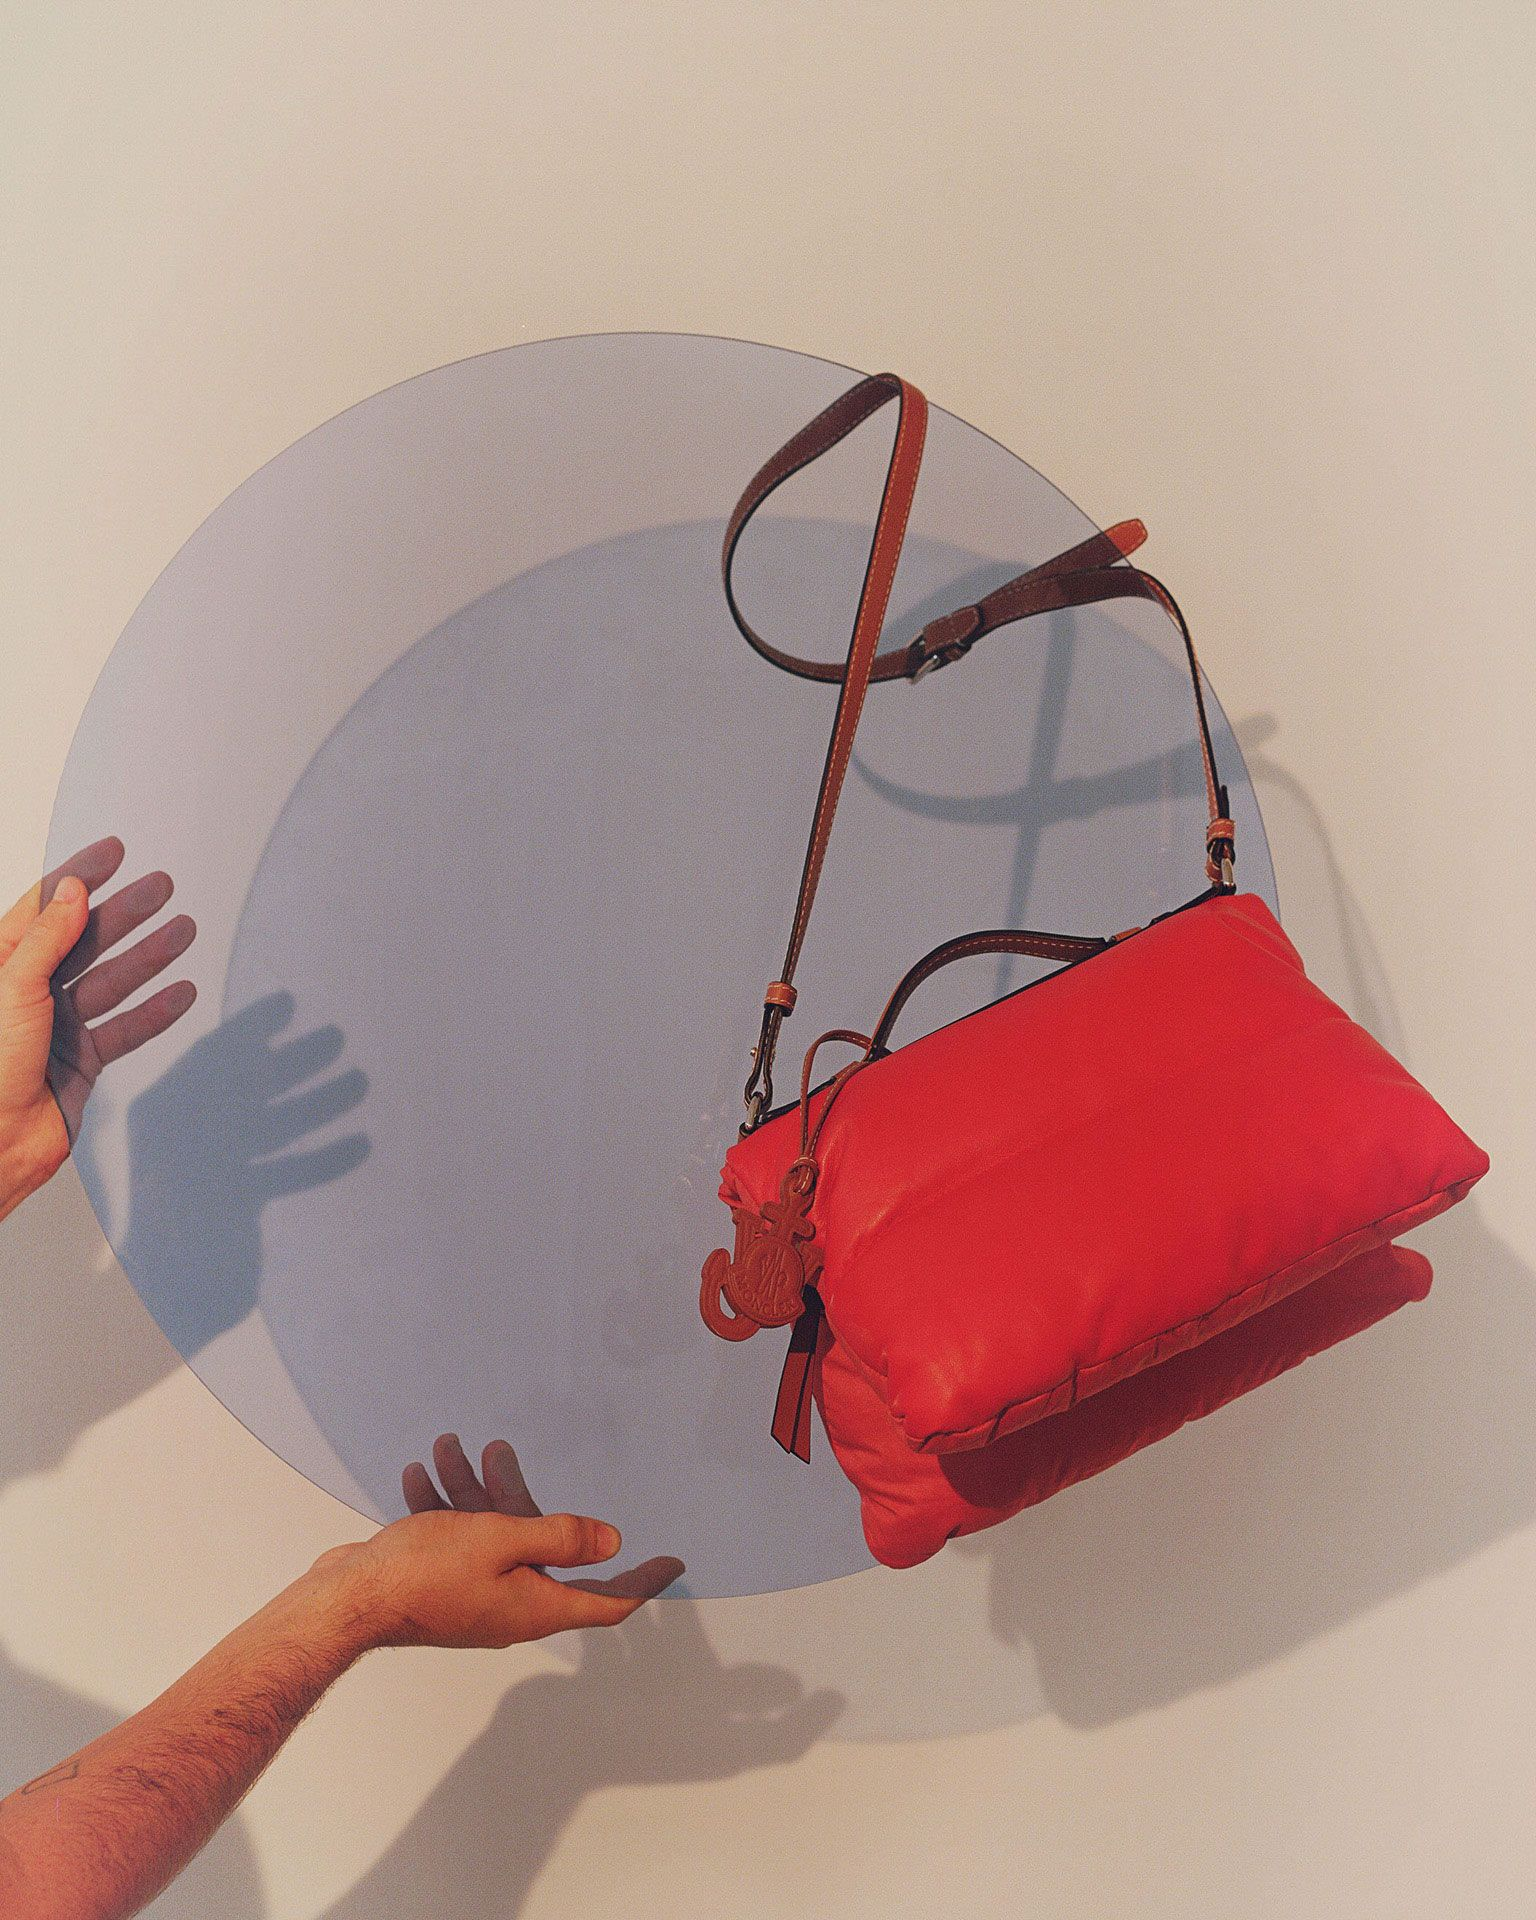 red leather bag hooked on light blue acrylic circle held by two hands in the air photographed by Oumayma B Tanfous for Moncler as a story for Document Journal magazine